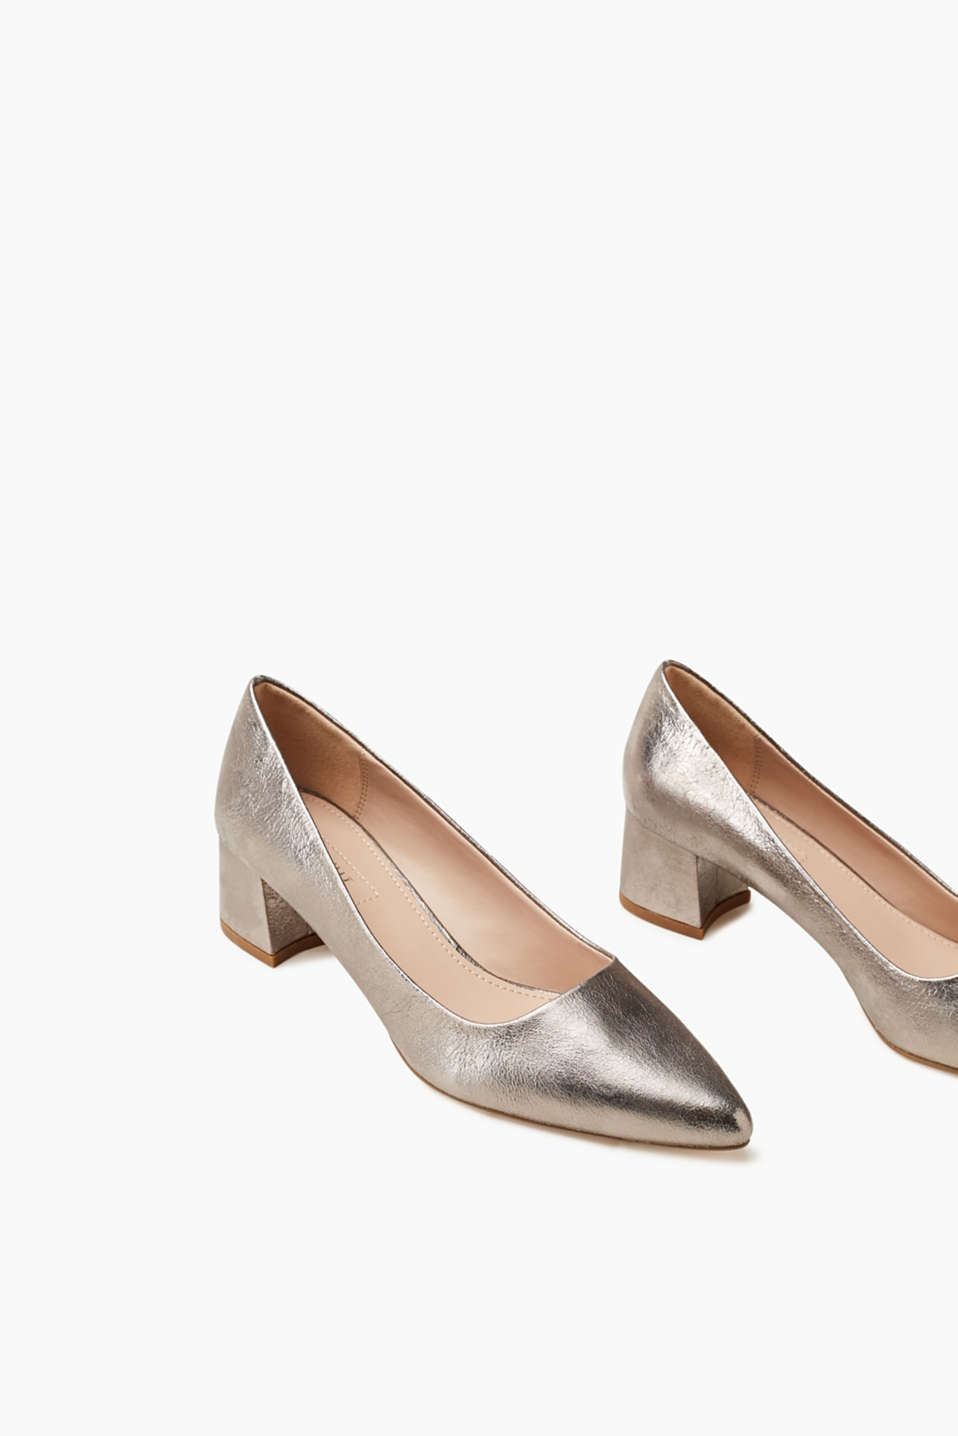 Zeitloser Metallic-Pumps mit Blockabsatz